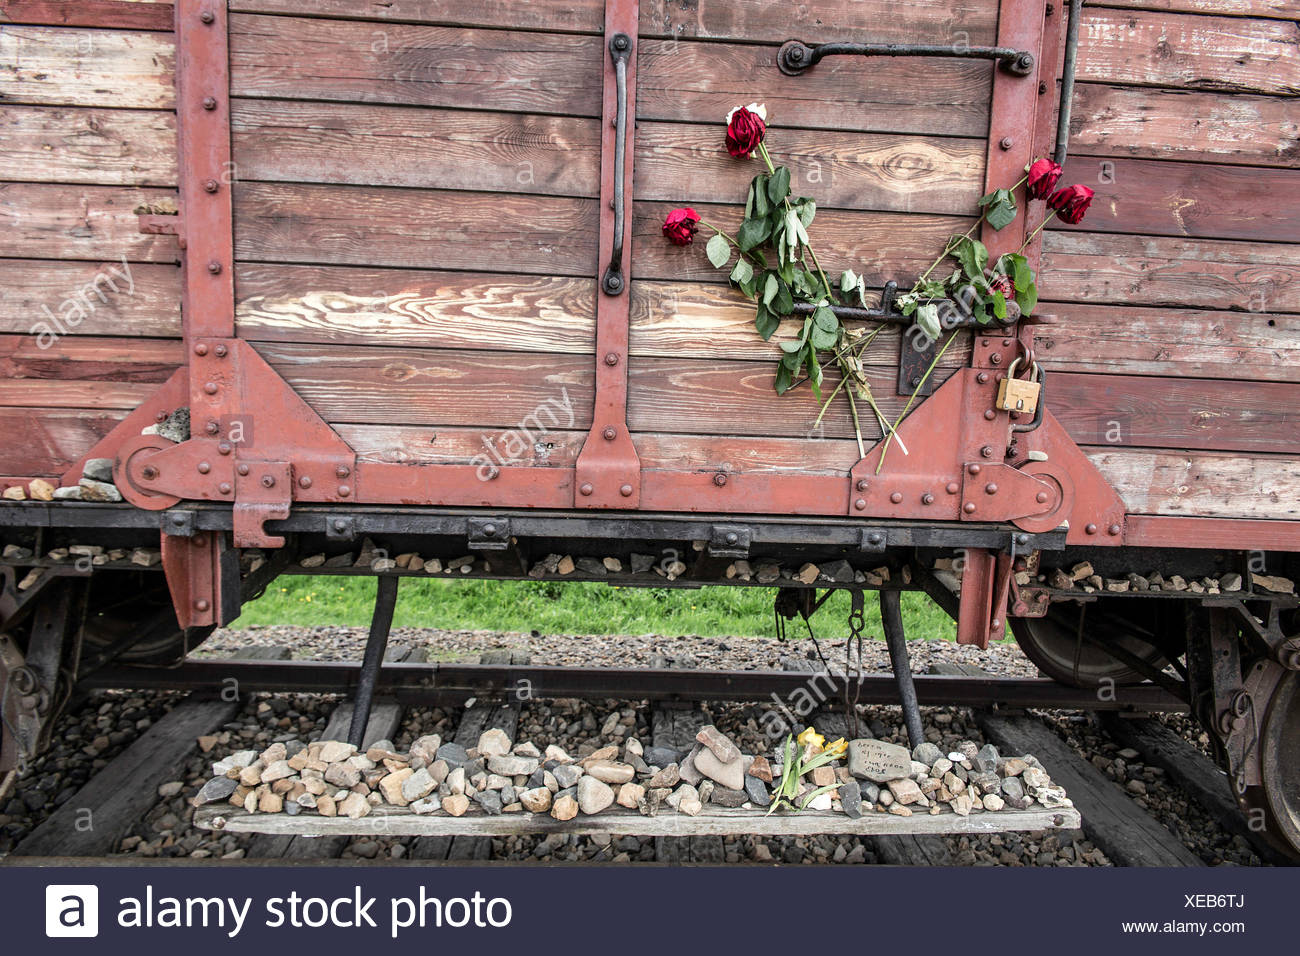 Carriage with roses, Auschwitz II-Birkenau extermination camp, Oswiecim, Poland - Stock Image